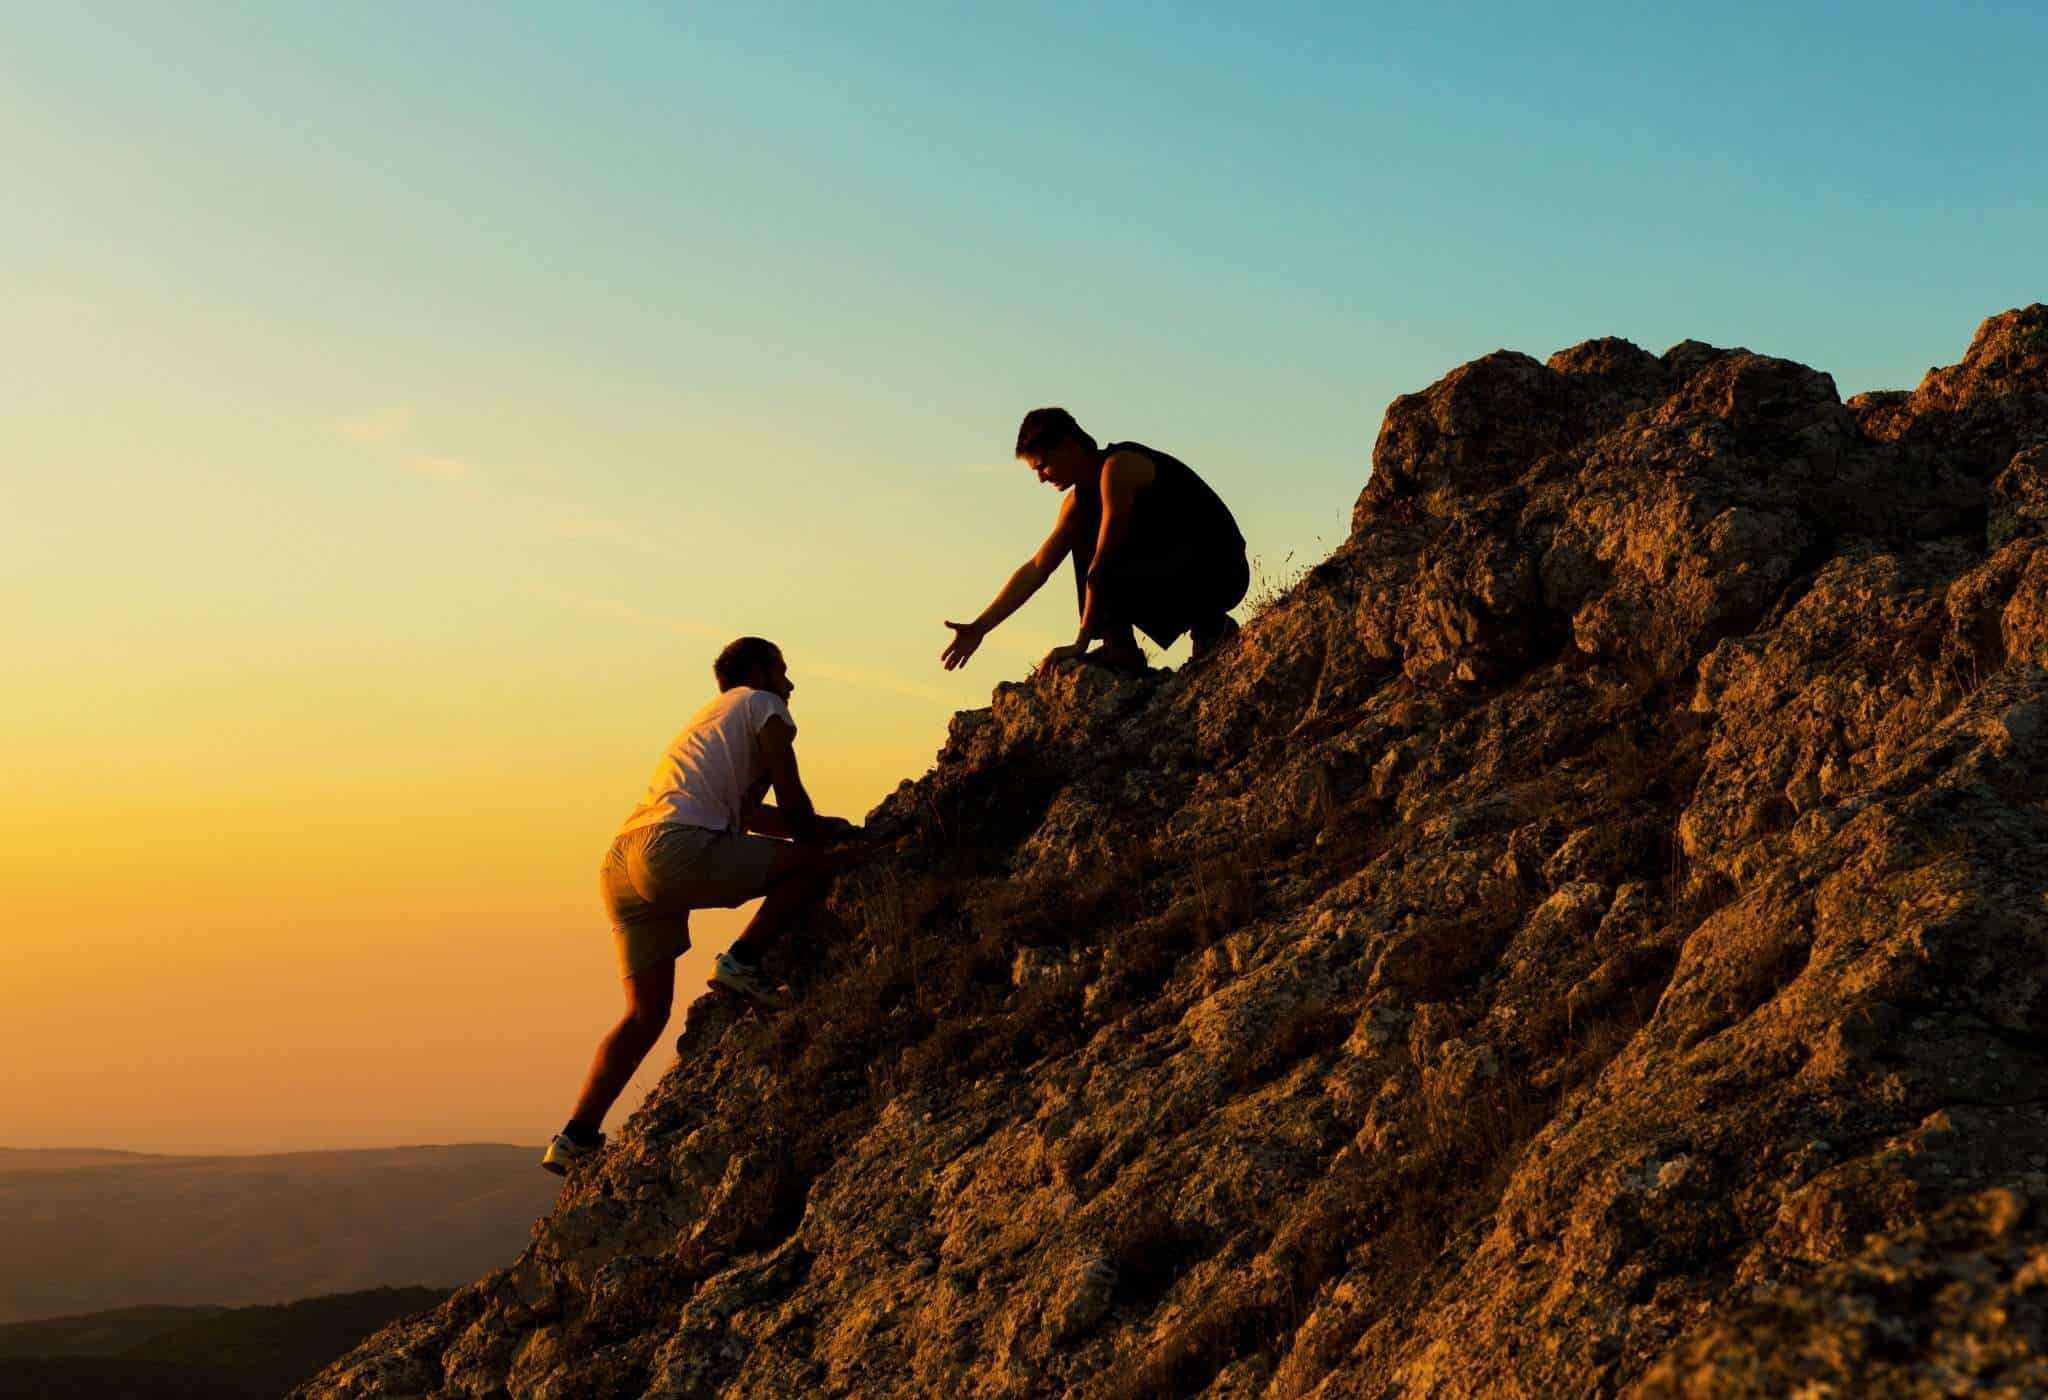 men helping each other climb the rock